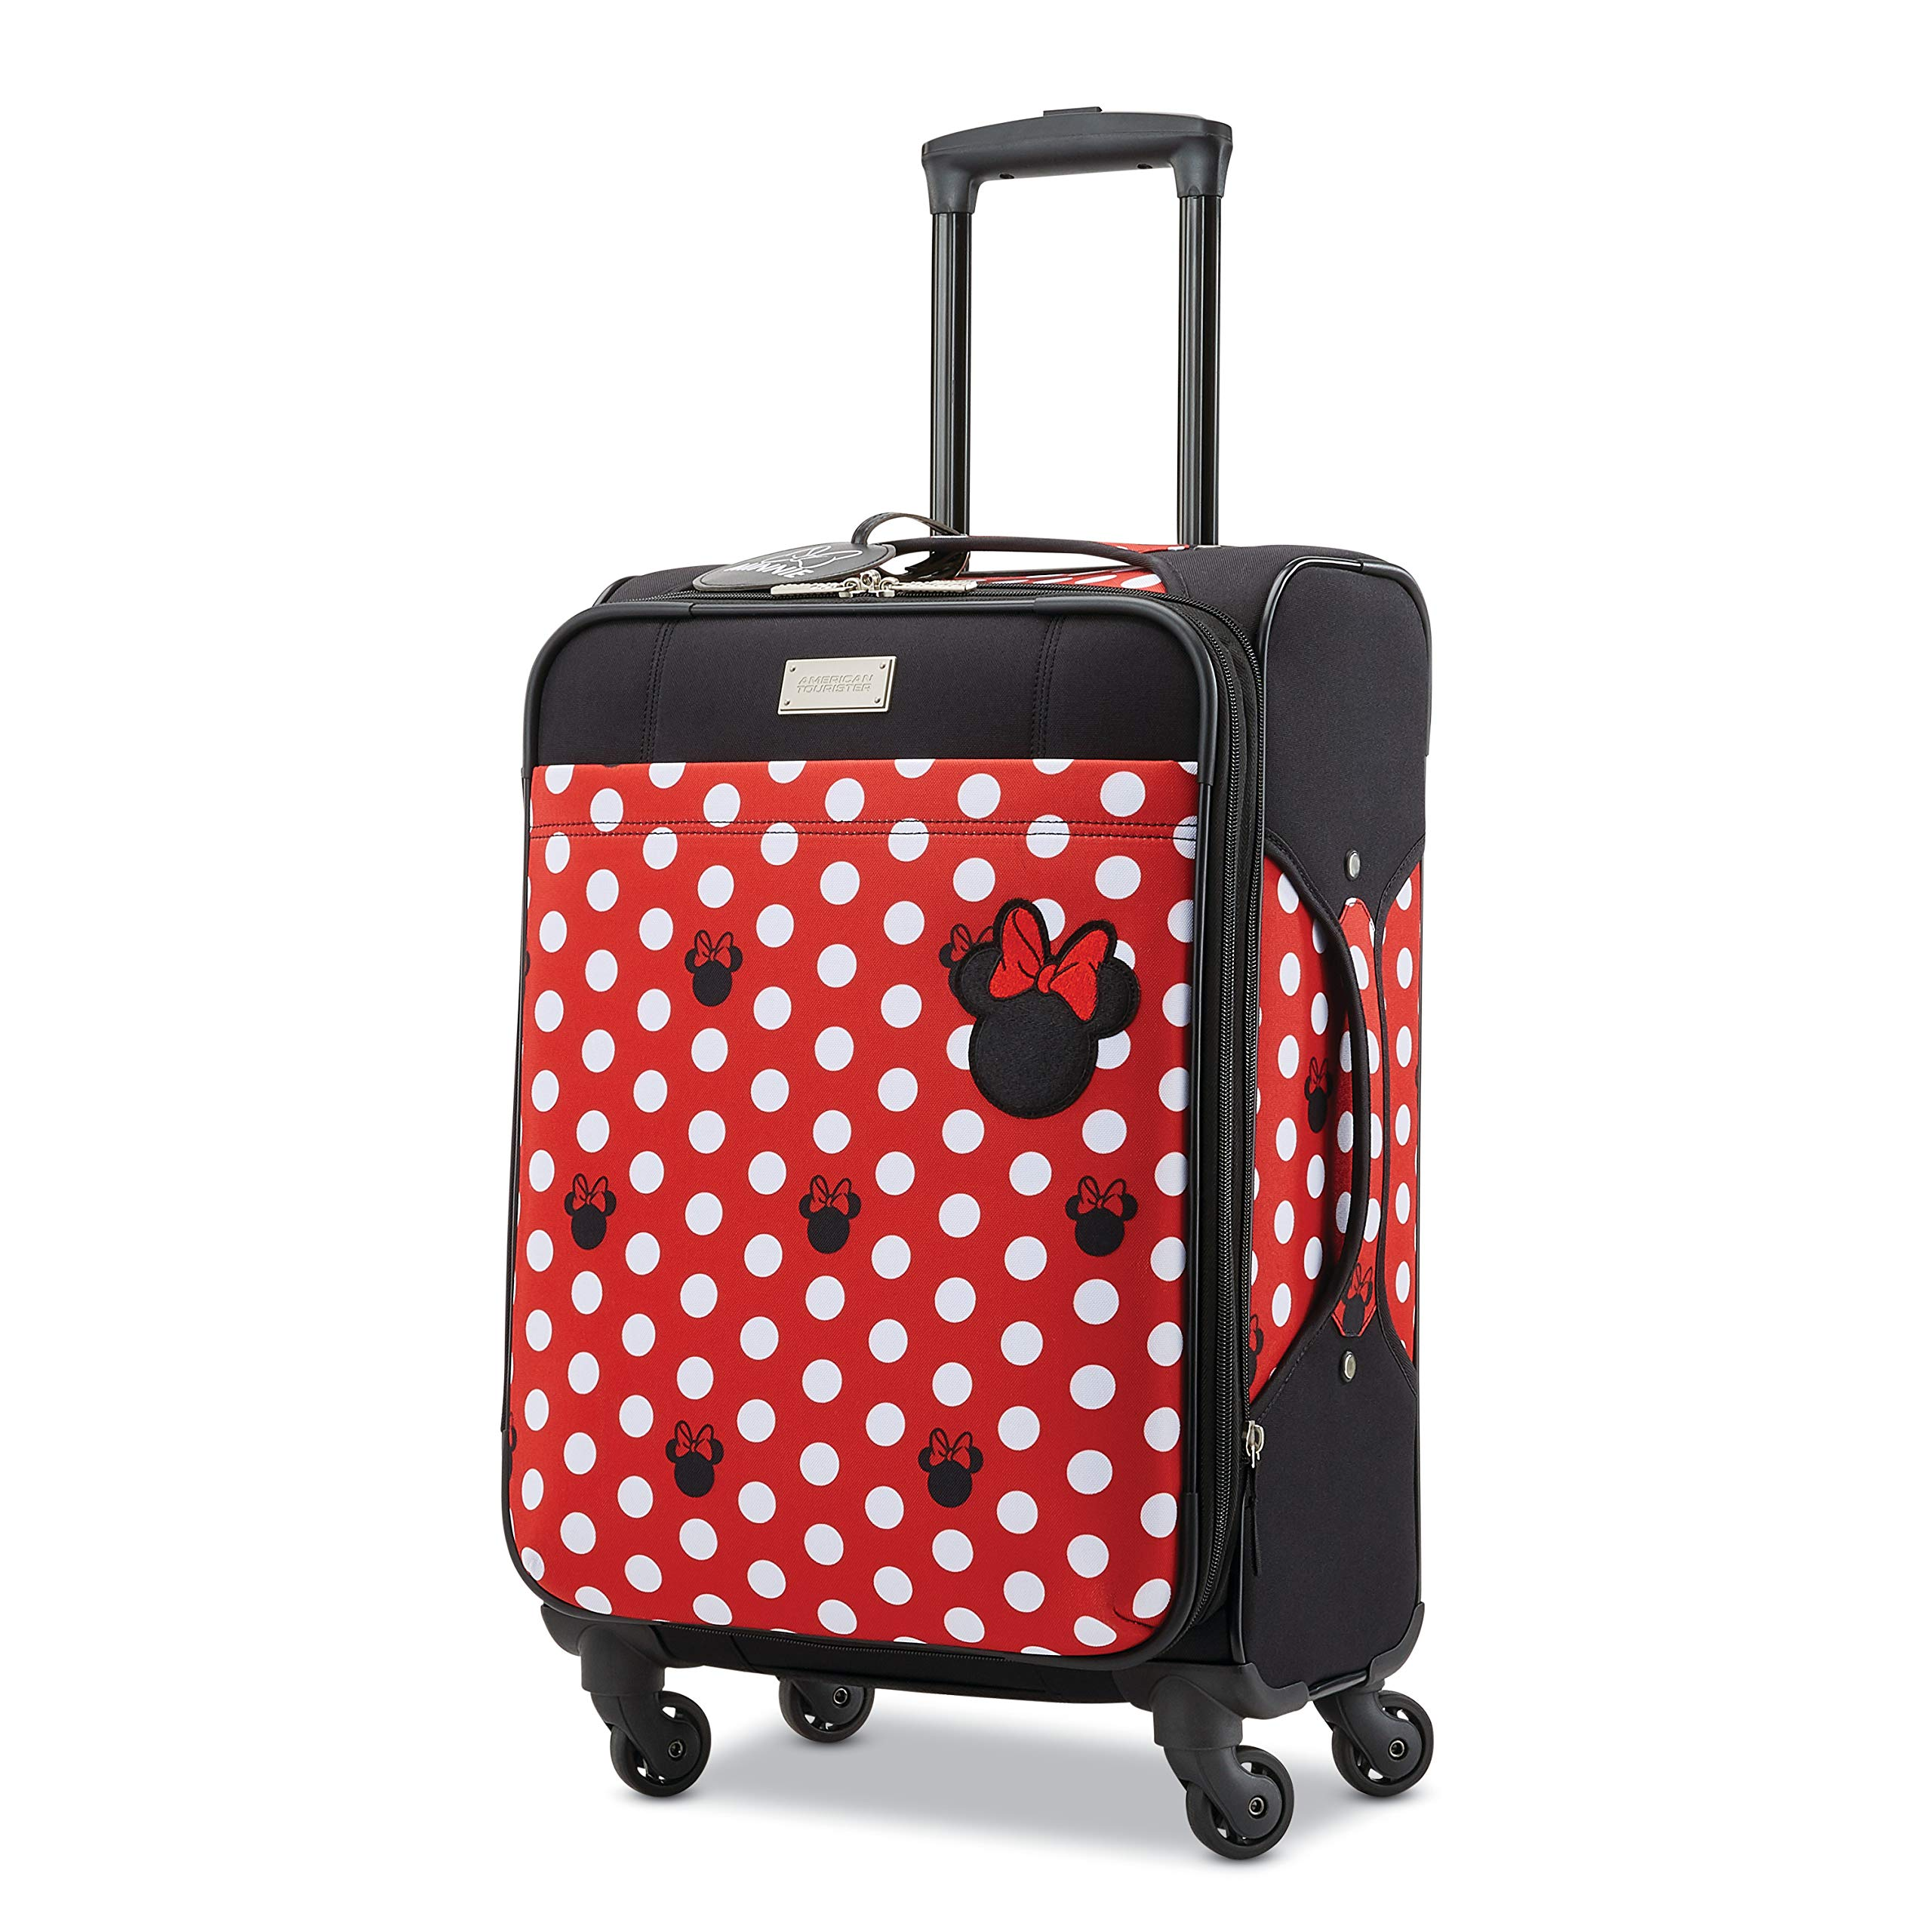 American Tourister Disney Minnie Mouse Dots Softside Carry On Luggage with Spinner Wheels, 21 Inch